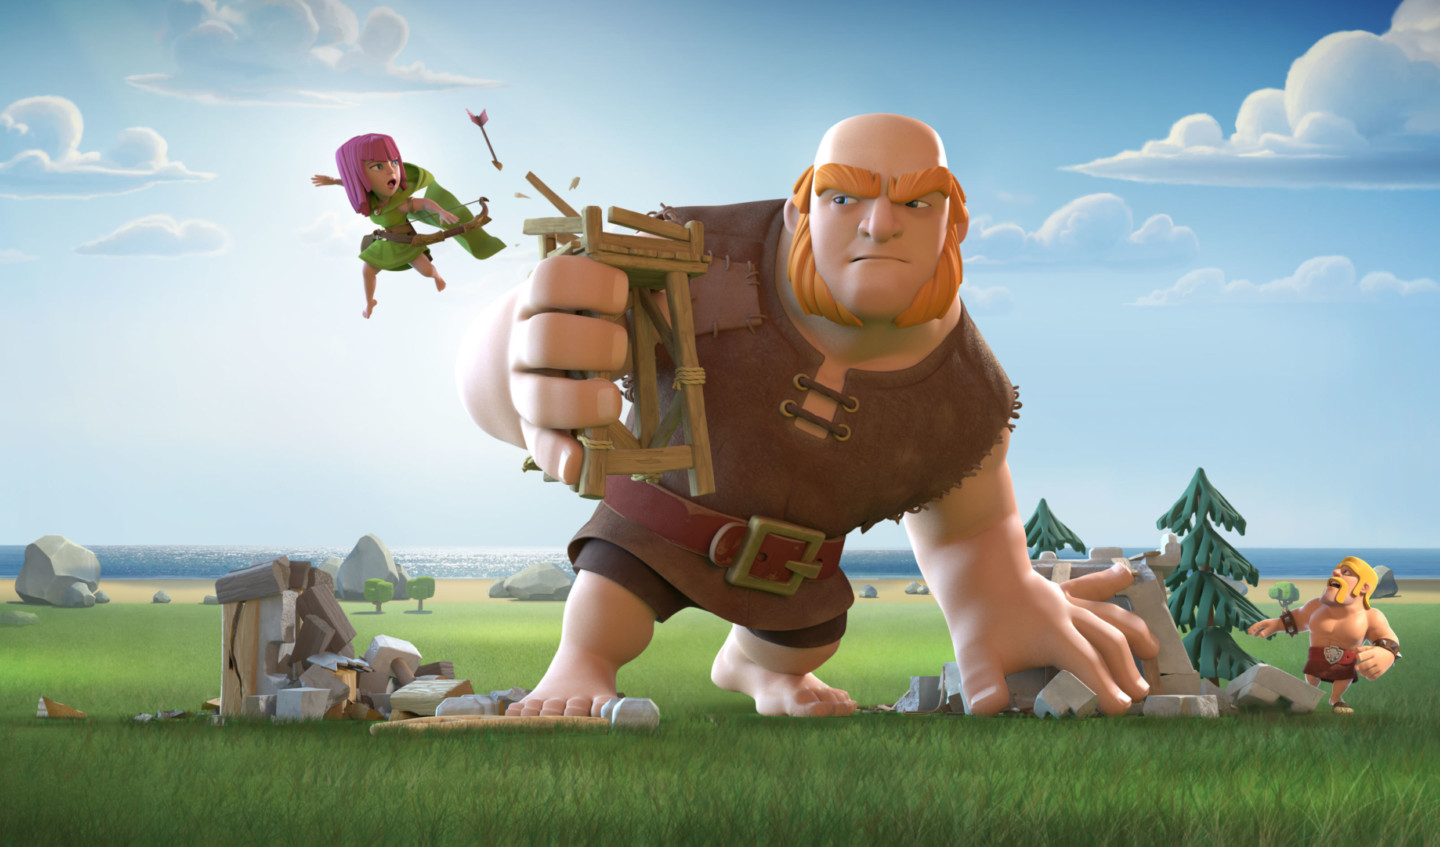 Clash of clans update date in Sydney